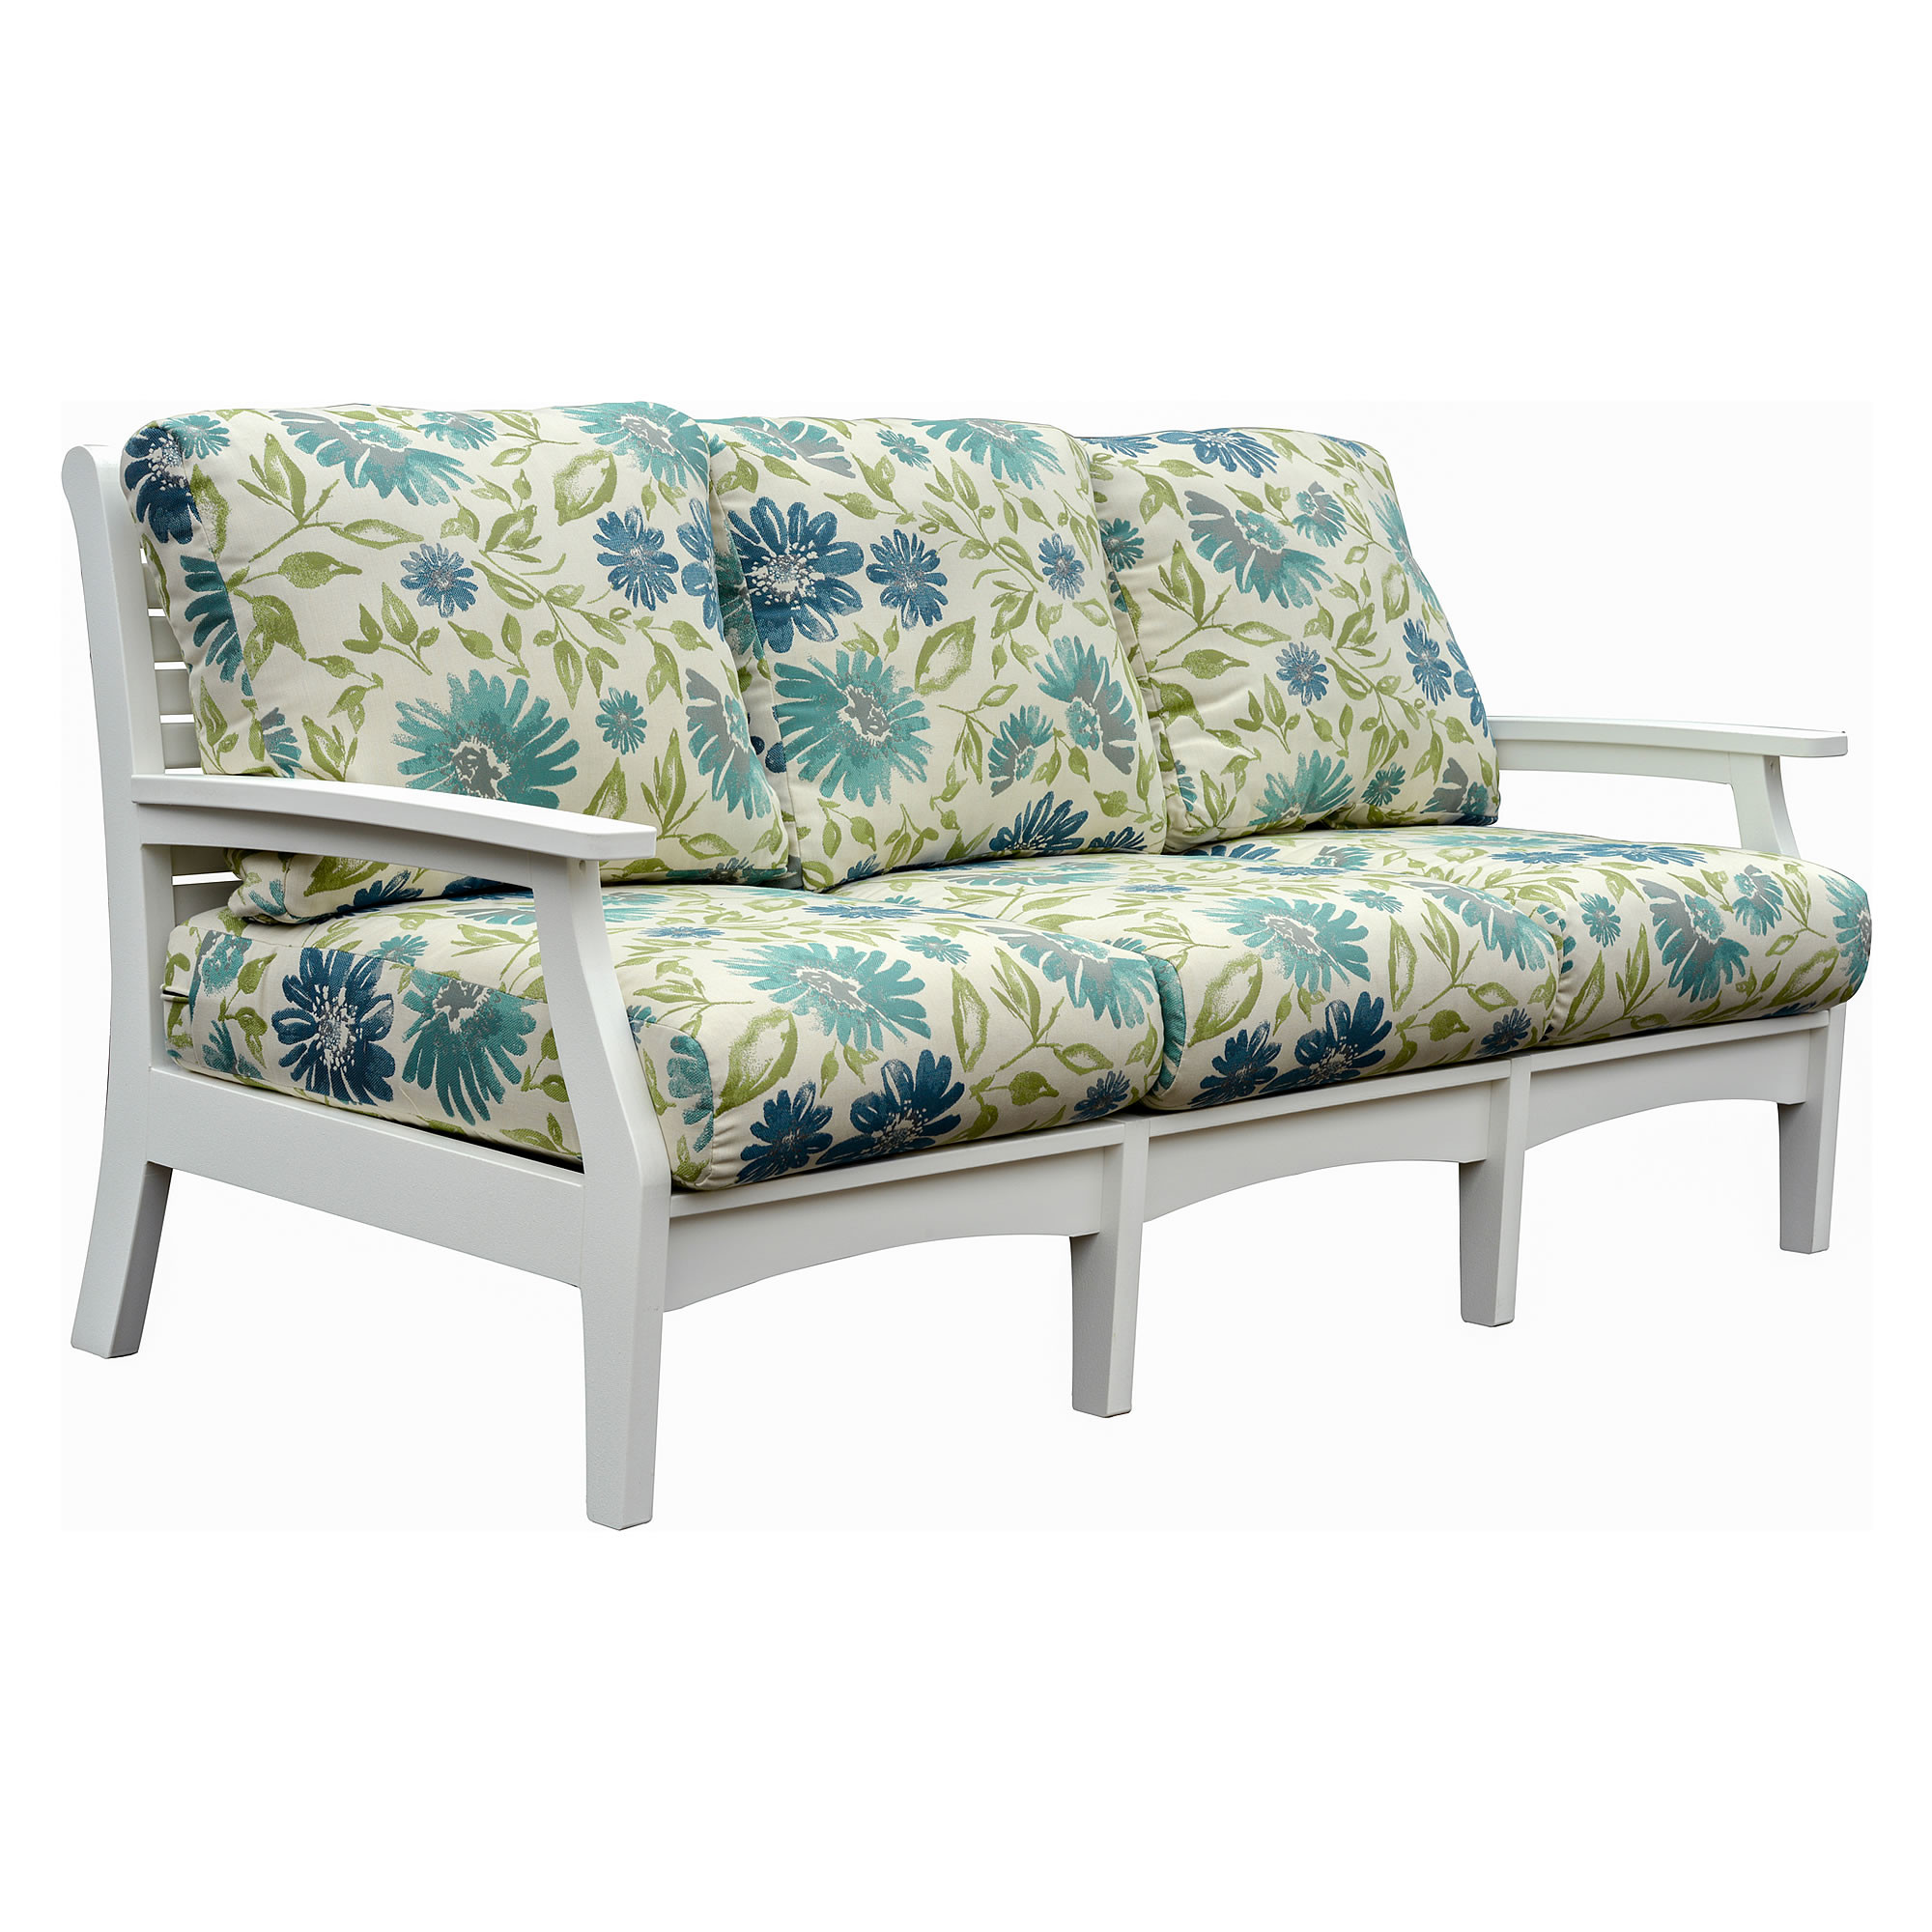 Berlin Gardens Classic Terrace Sofa Classic Terrace Berlin Gardens Poly Furniture Collections